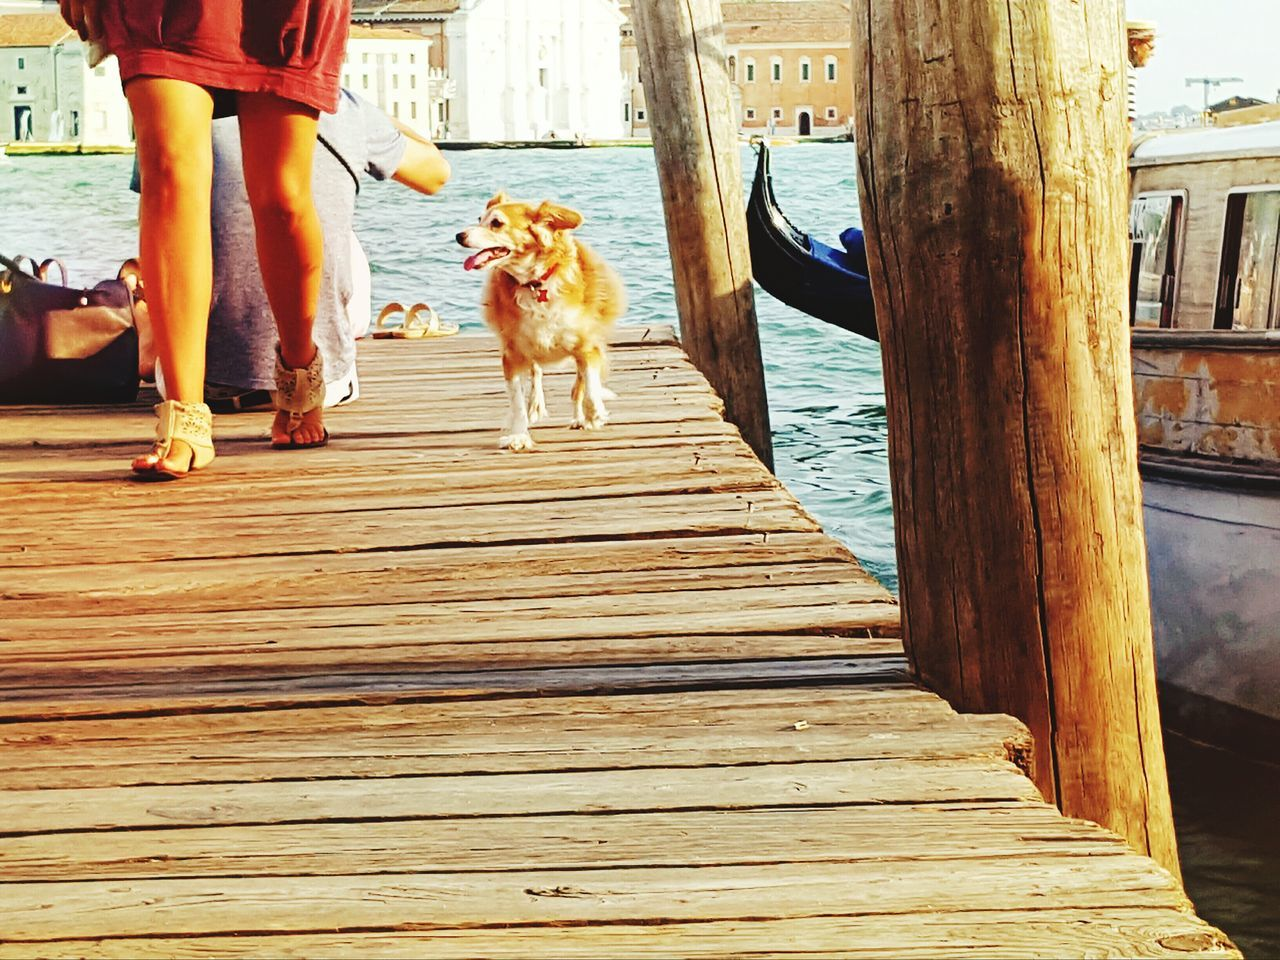 On The Bridge Photography In Motion People Of The Oceans People Dog Goldenretriever People And Dog Seascape Sealife Lifestyles Life In Motion Life Is A Journey Colour Of Life Feel The Moments Capture The Moment Venice, Italy Feeling Freedom Telling Stories Differently Summer Views Learn & Shoot: Simplicity People Together Boat Dock People And Places